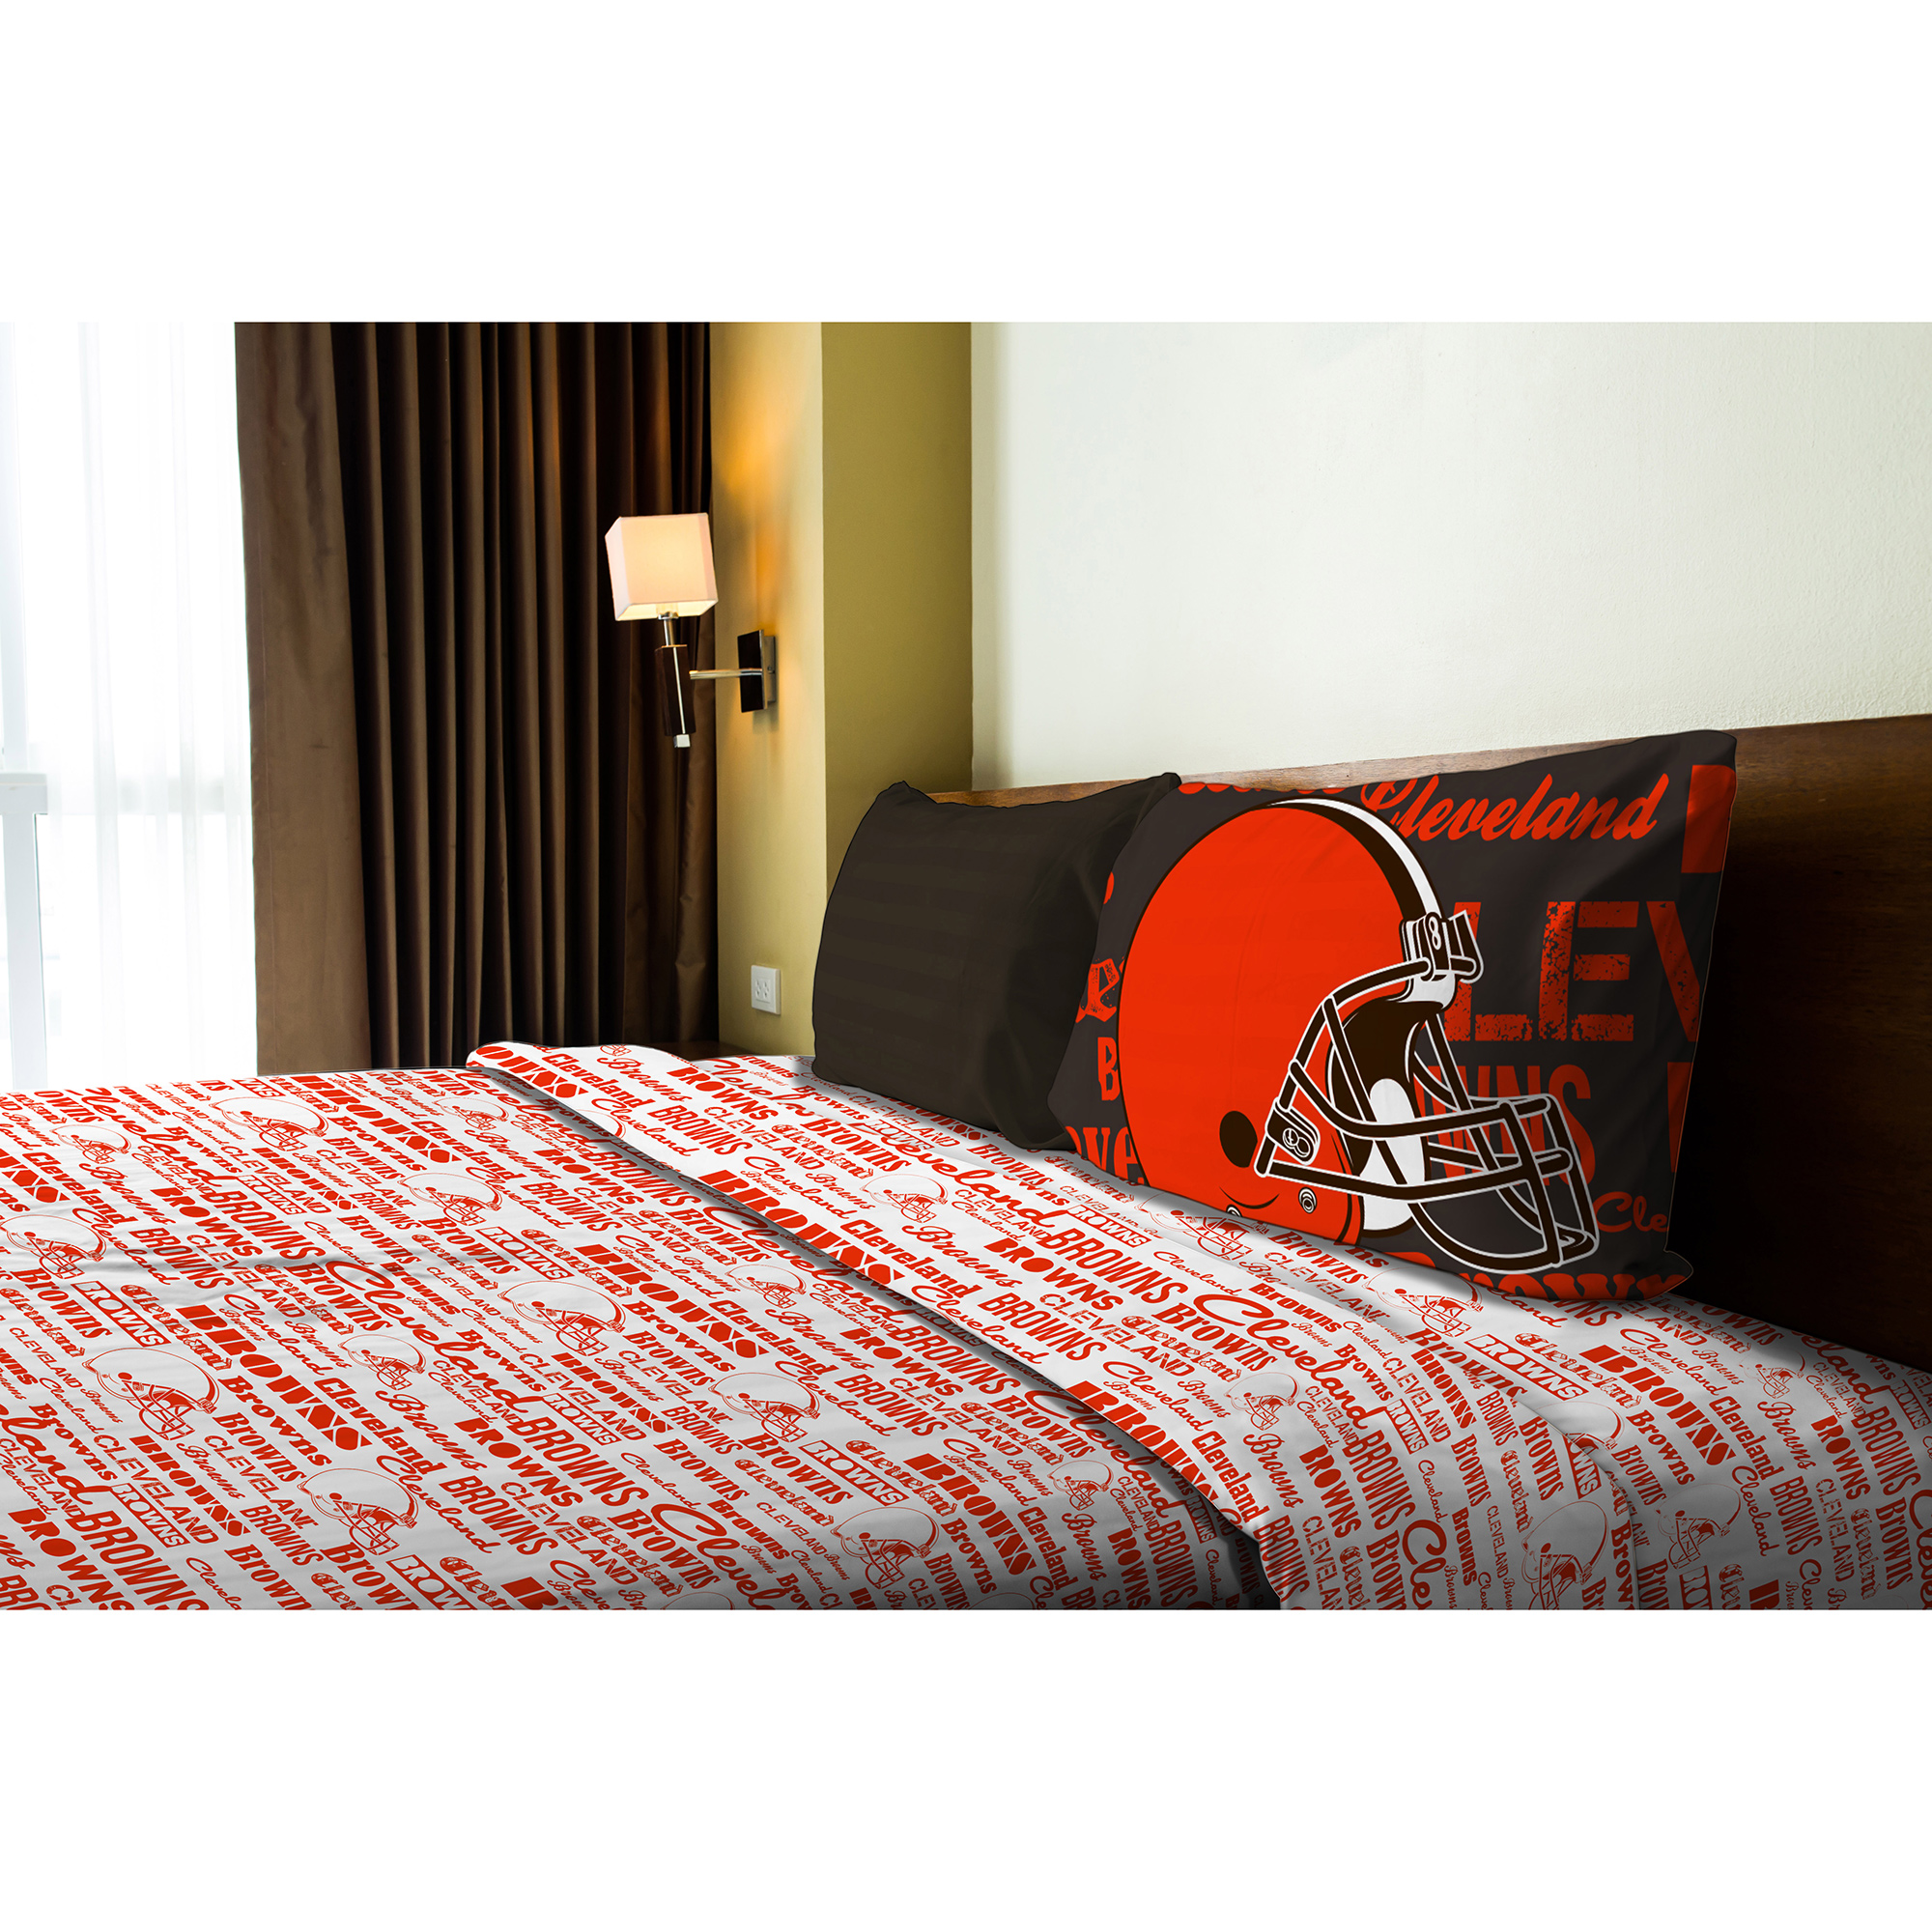 Cleveland Browns The Northwest Company Twin Sheet Set - No Size